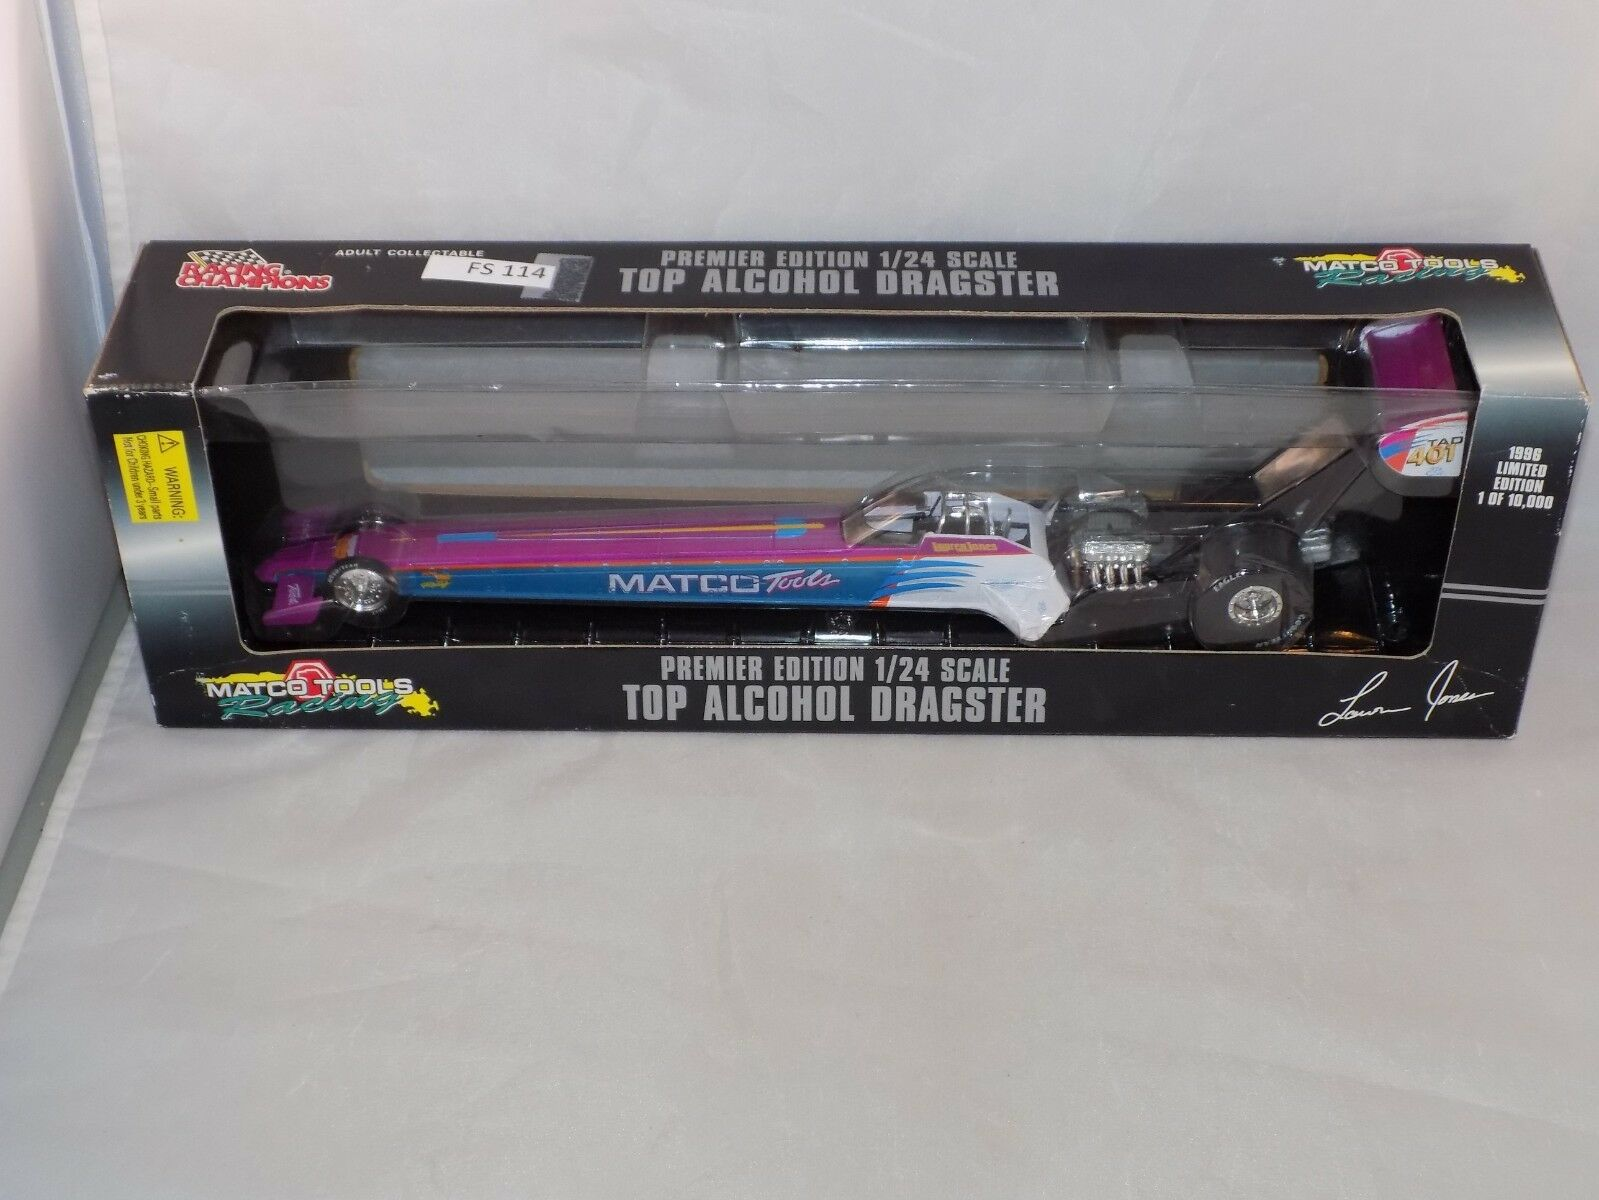 Racing Champions Premier Edition 1 24 scale Top Alcohol Dragster 1996  (FS 114)